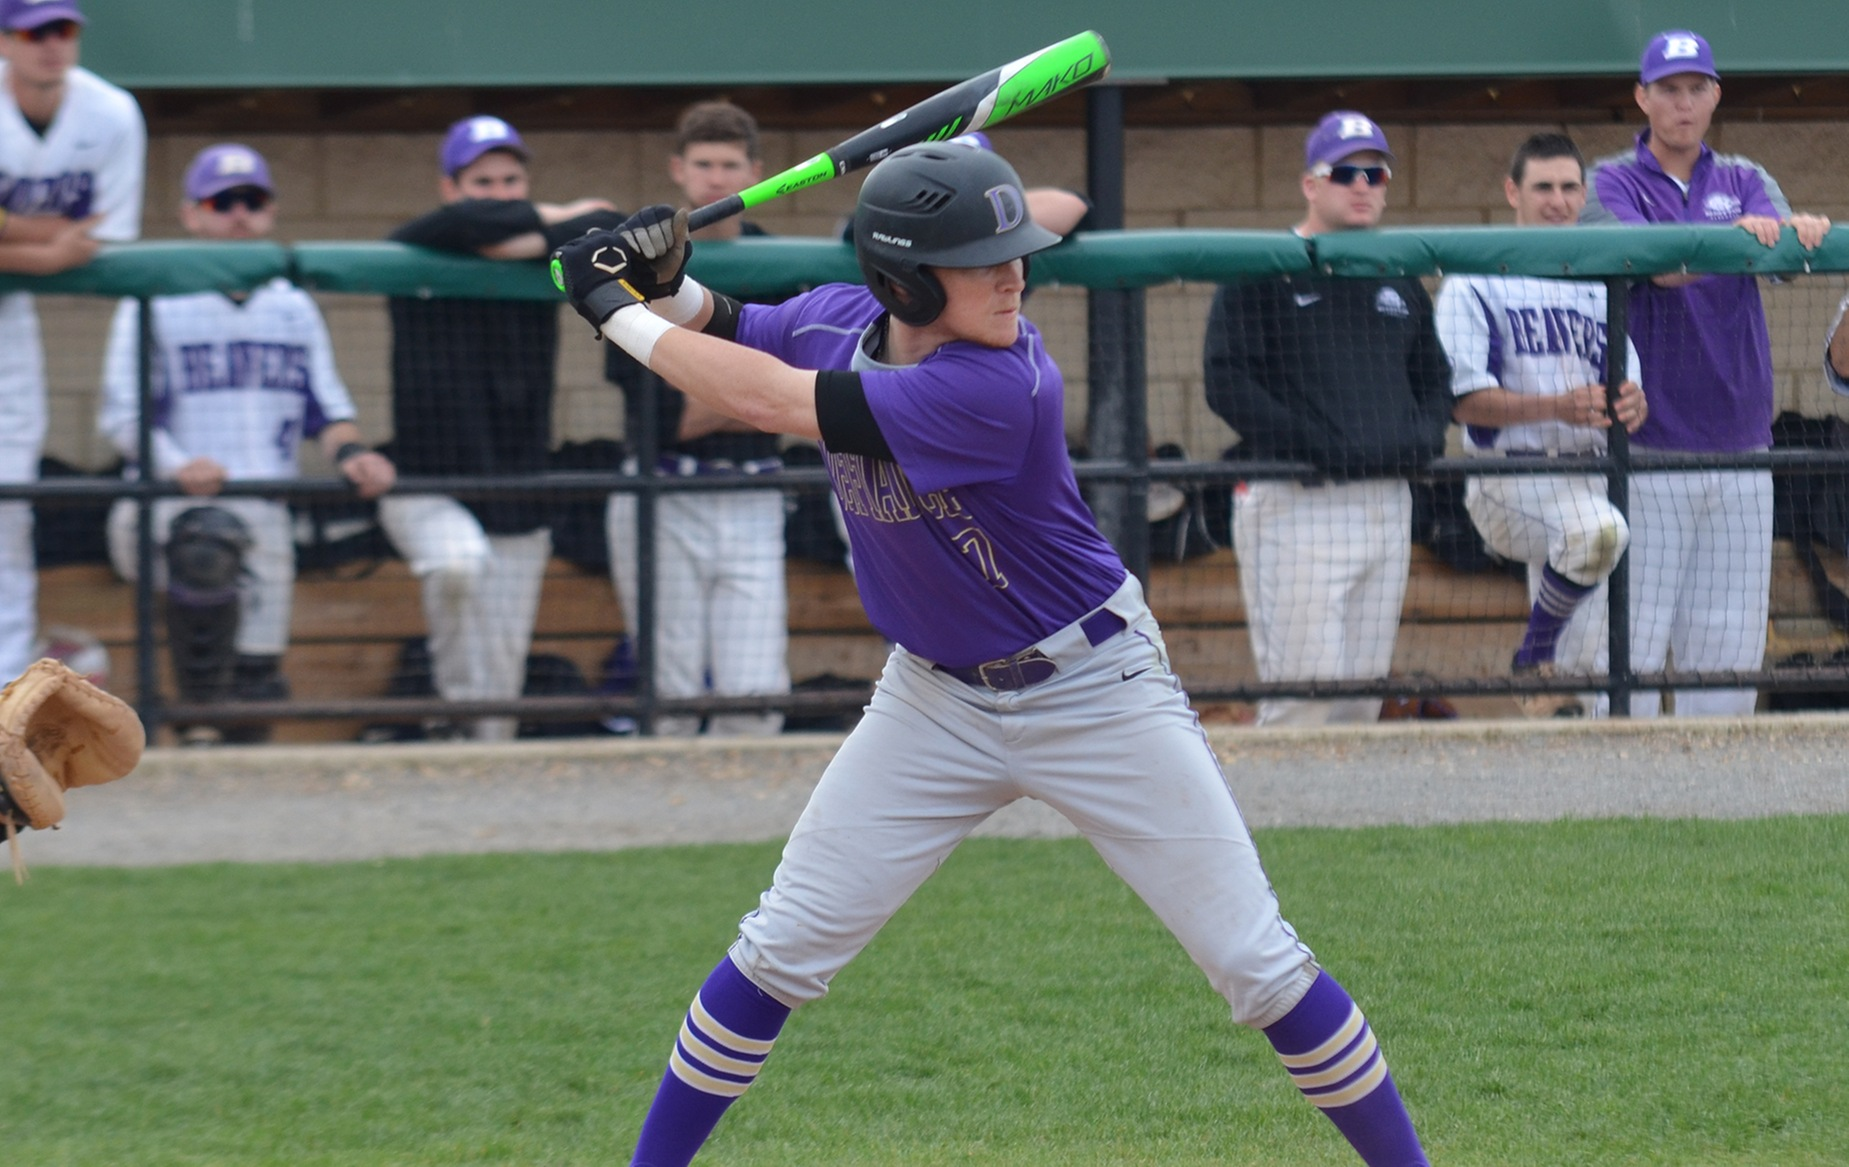 Yellow Jackets Split Doubleheader with Finlandia